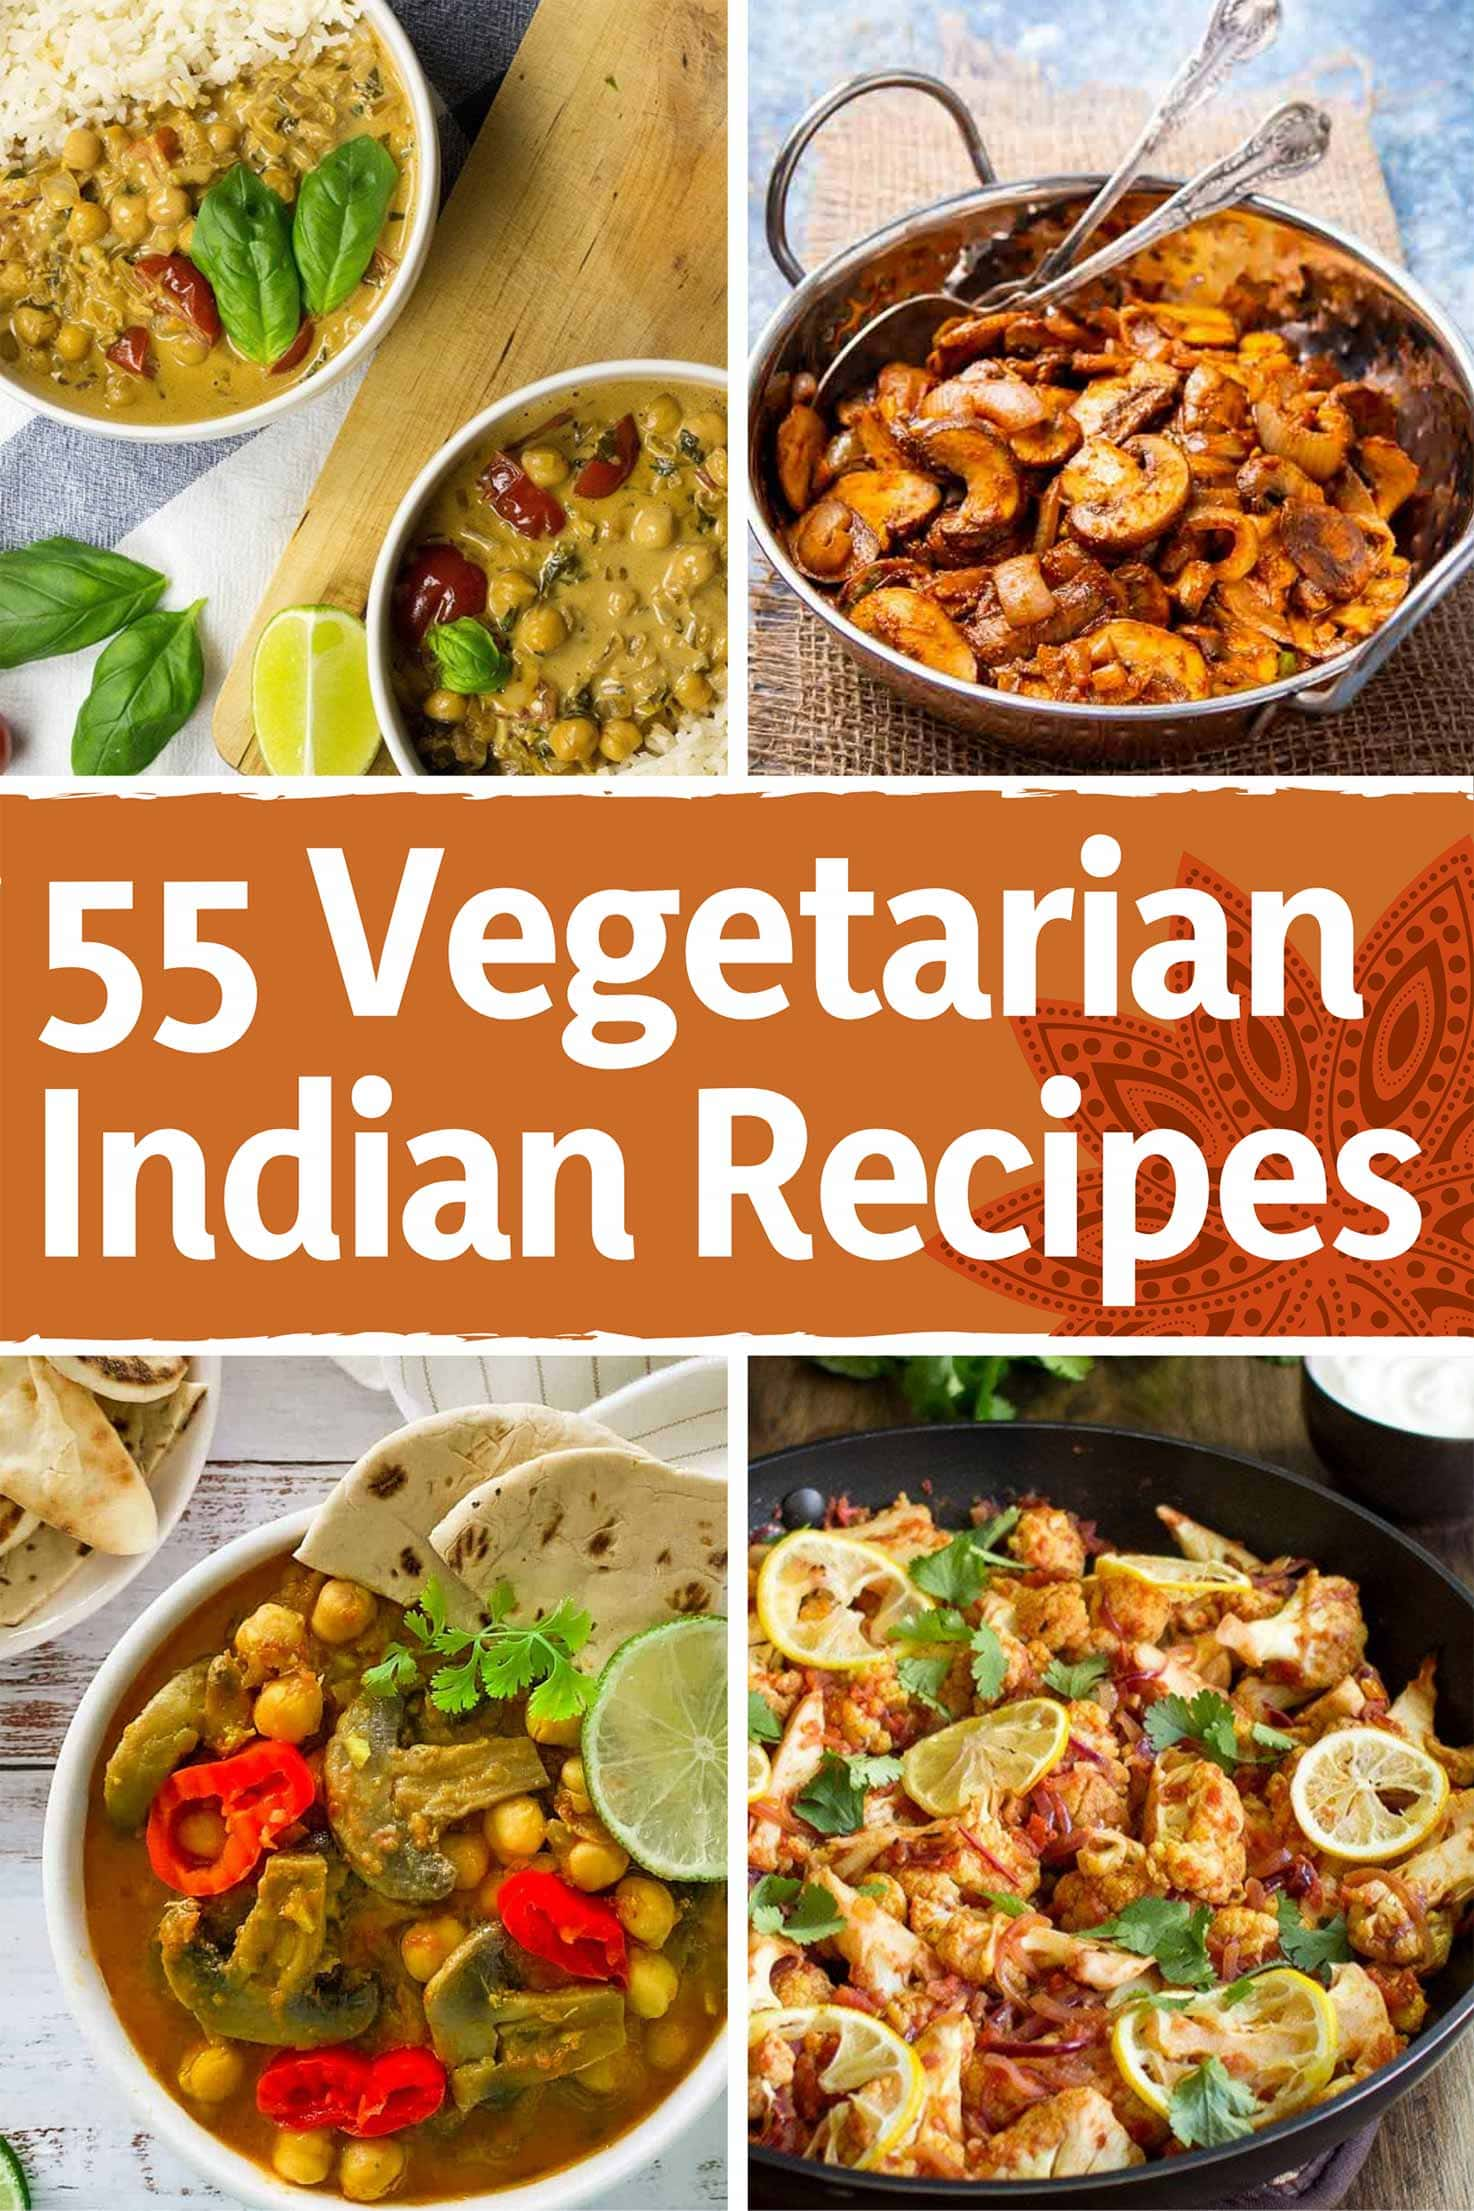 55 Vegetarian Indian Recipes Vibrant Meals For A Delicious Vegetarian Indian Feast Hurry The Food